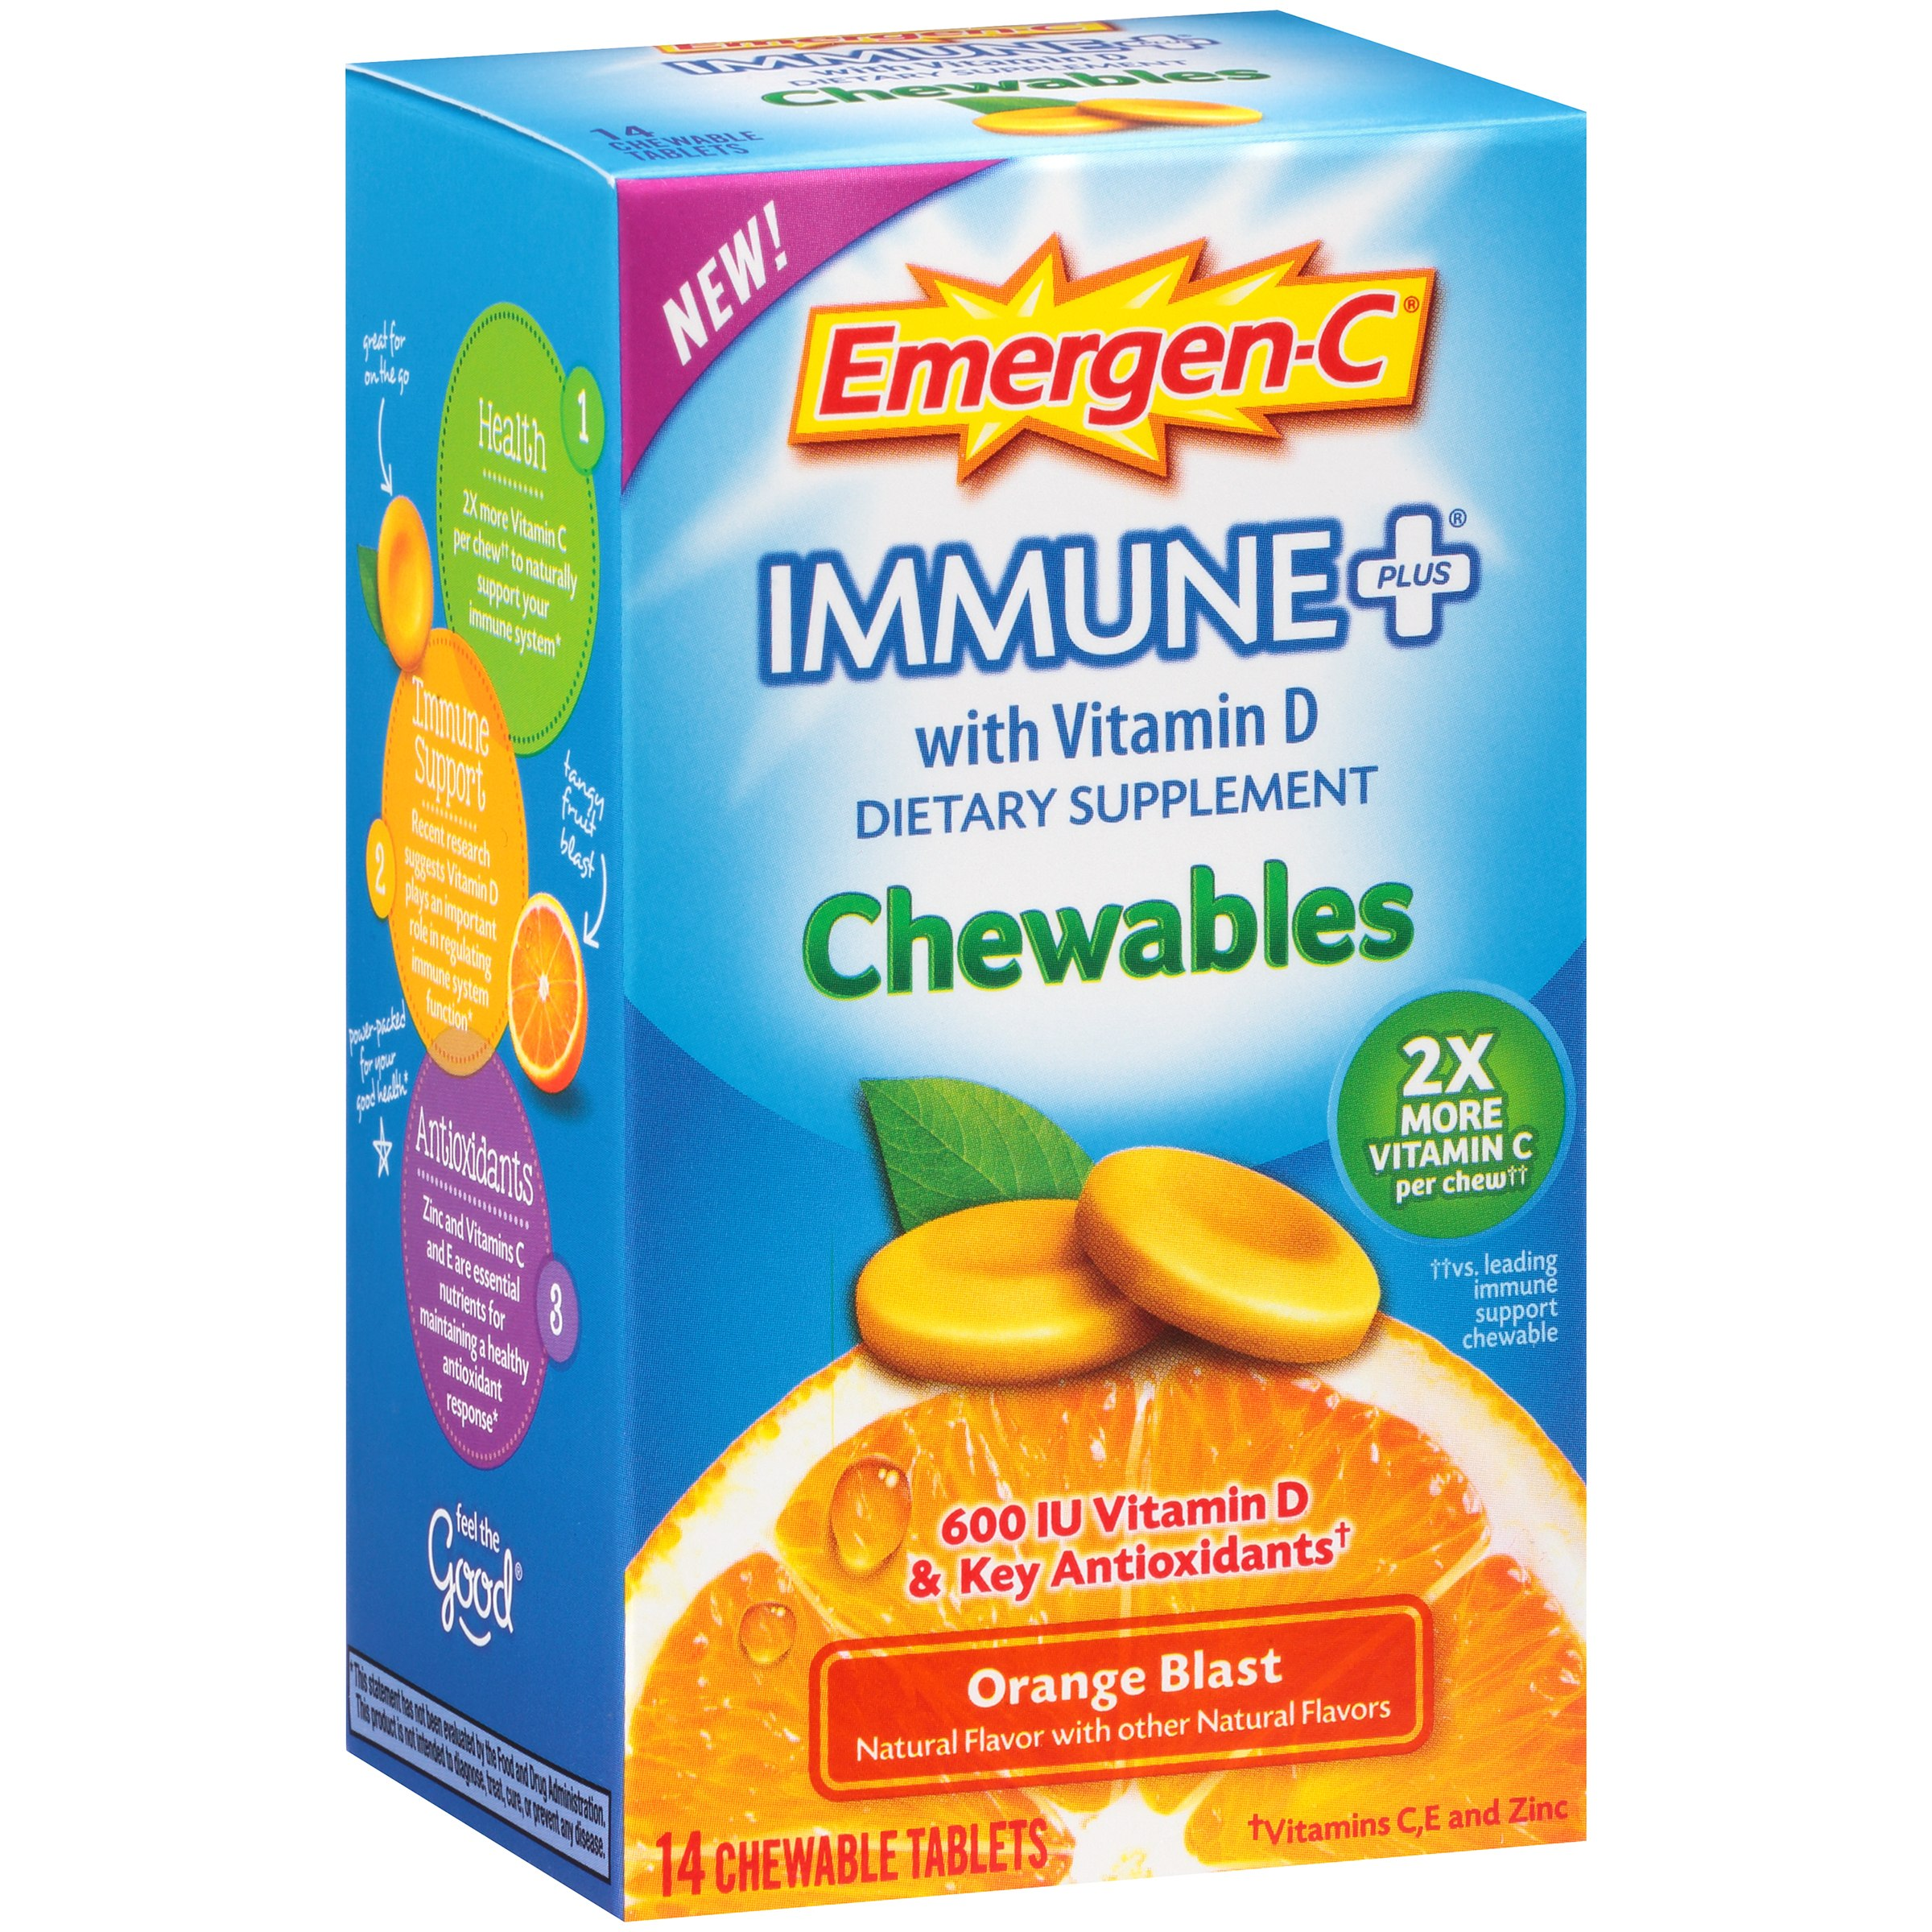 Emergen-C Immune+ Chewables (14 Count, Orange Blast Flavor) Dietary Supplement Tablet With 600 IU Vitamin D, 500mg Vitamin C